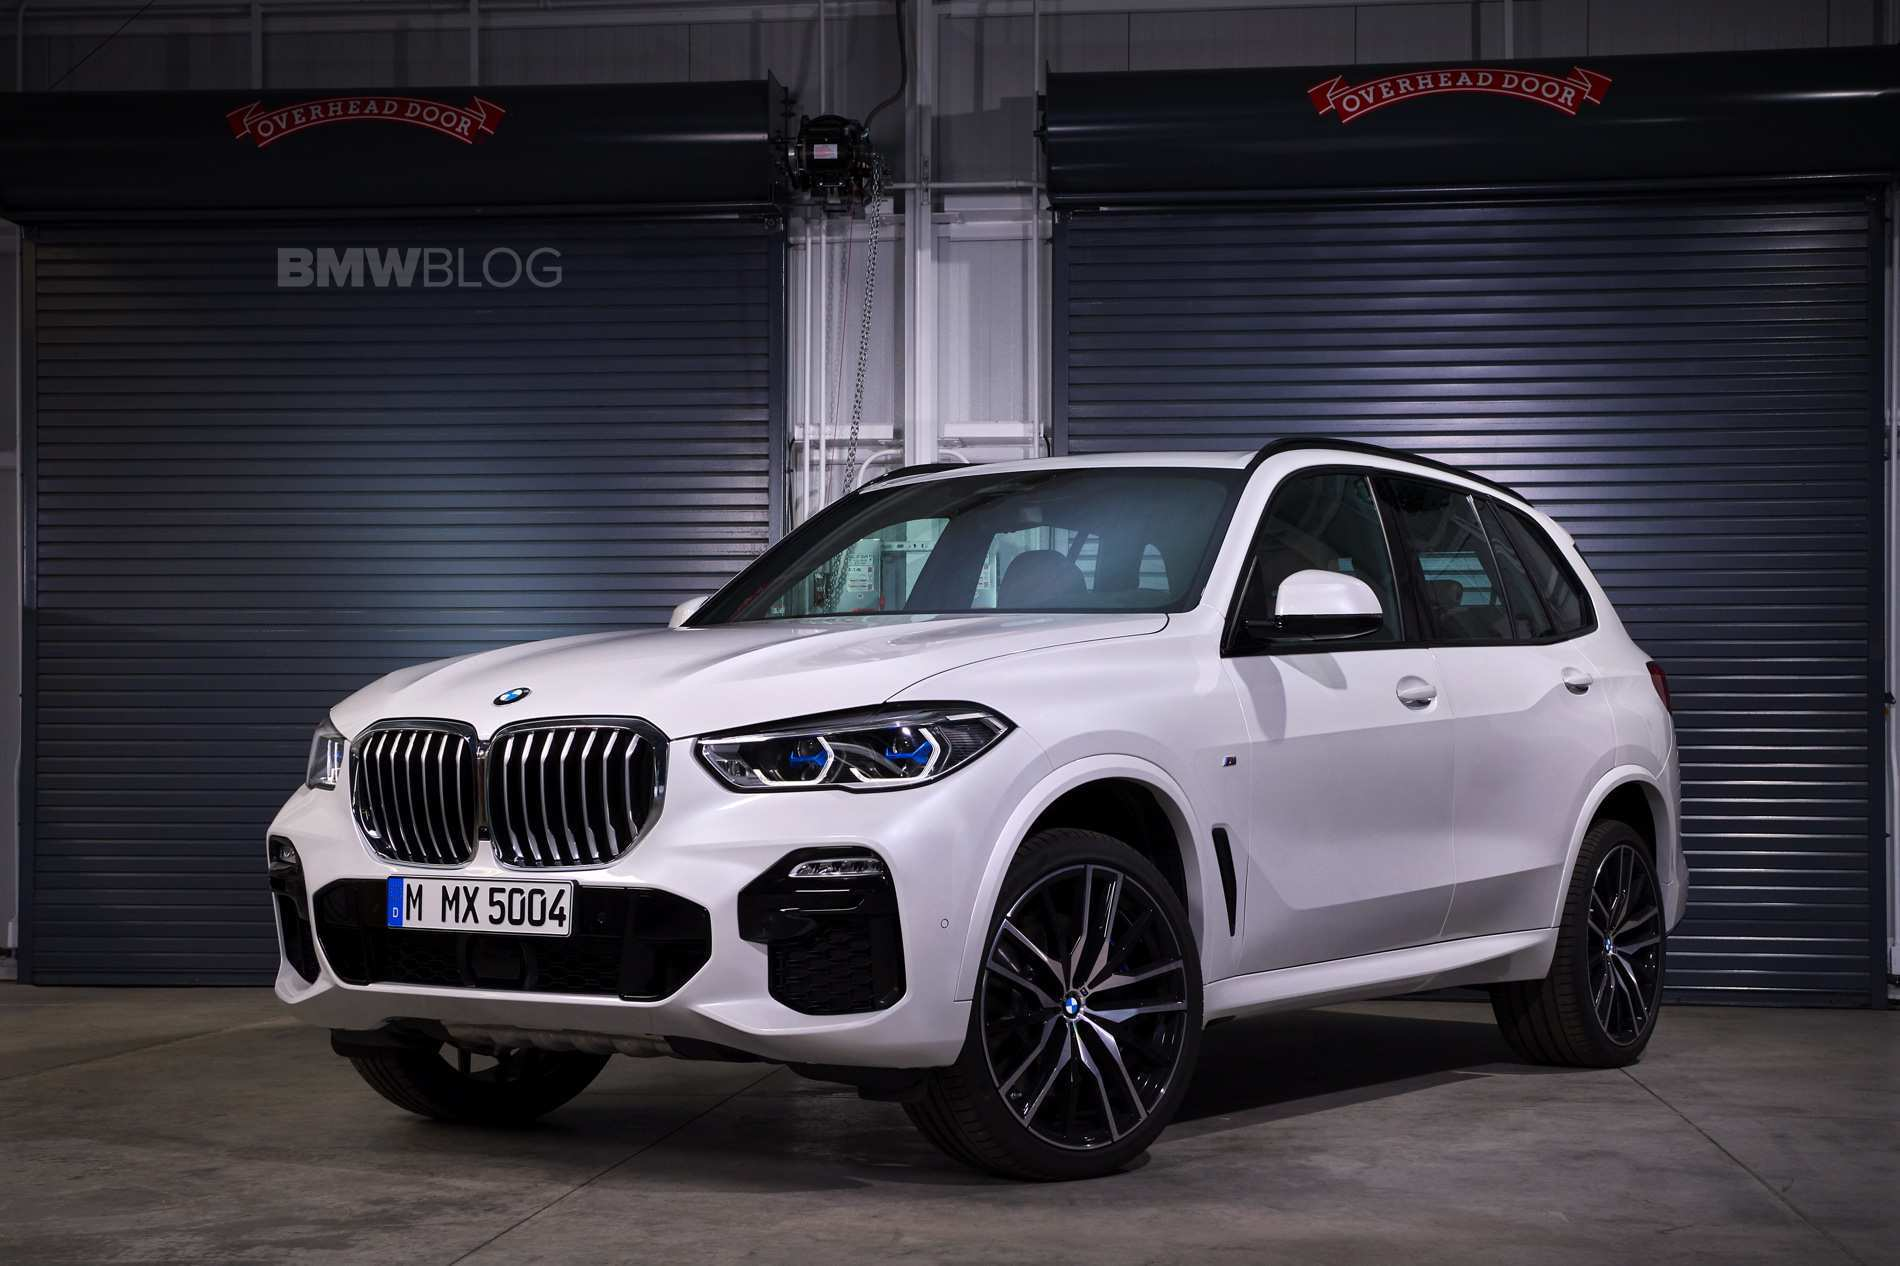 14 Concept of The 2019 Bmw X5 Configurator Usa Redesign And Concept Pictures with The 2019 Bmw X5 Configurator Usa Redesign And Concept